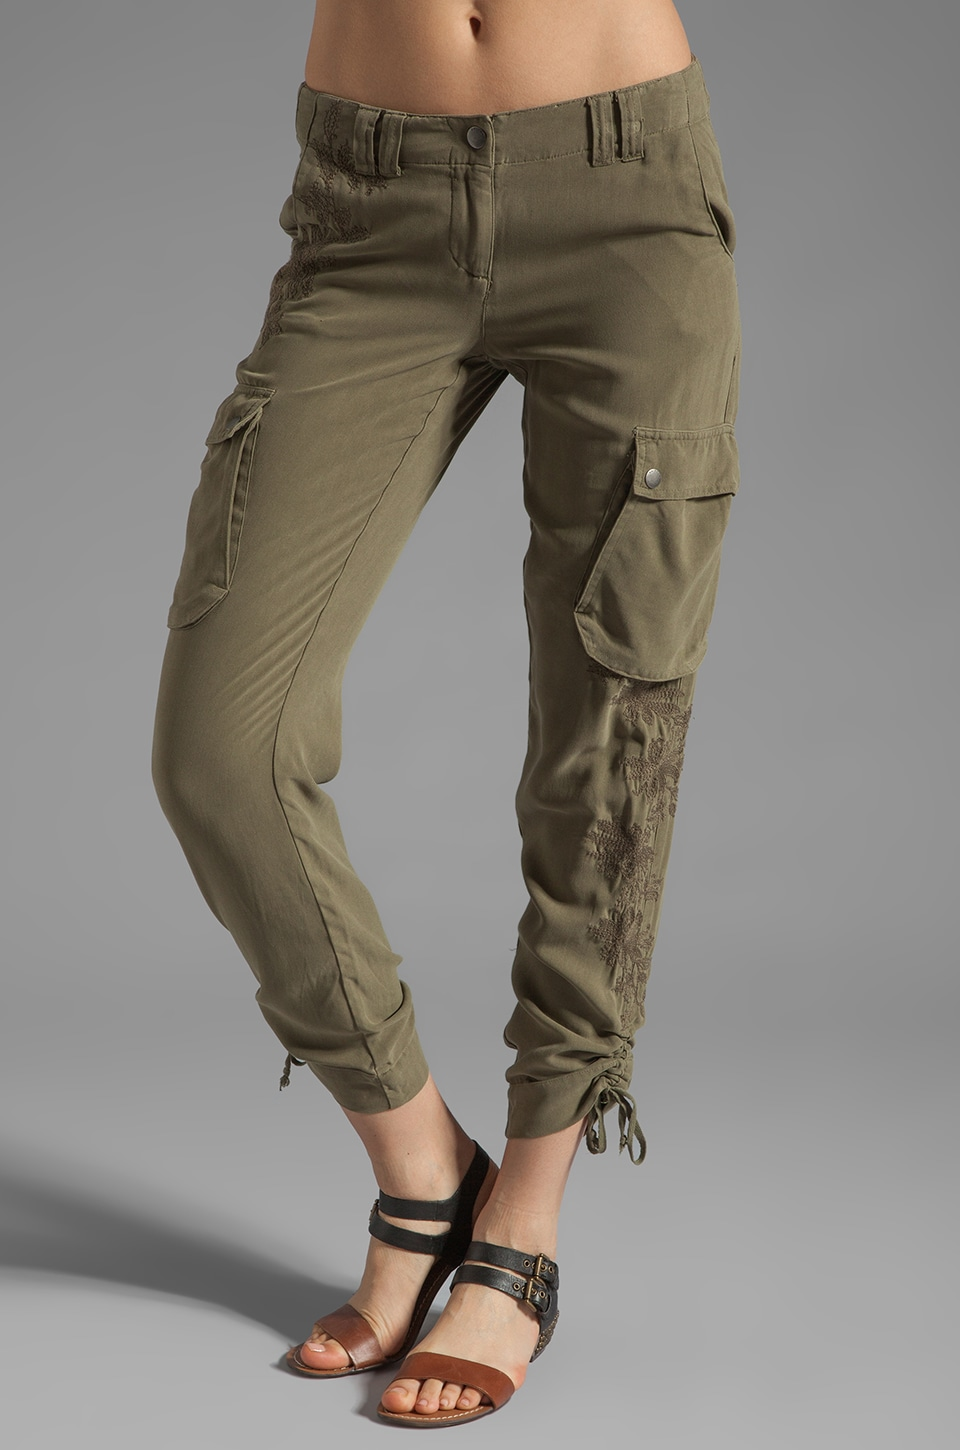 Da-Nang Cargo Pocket Pant in Fern